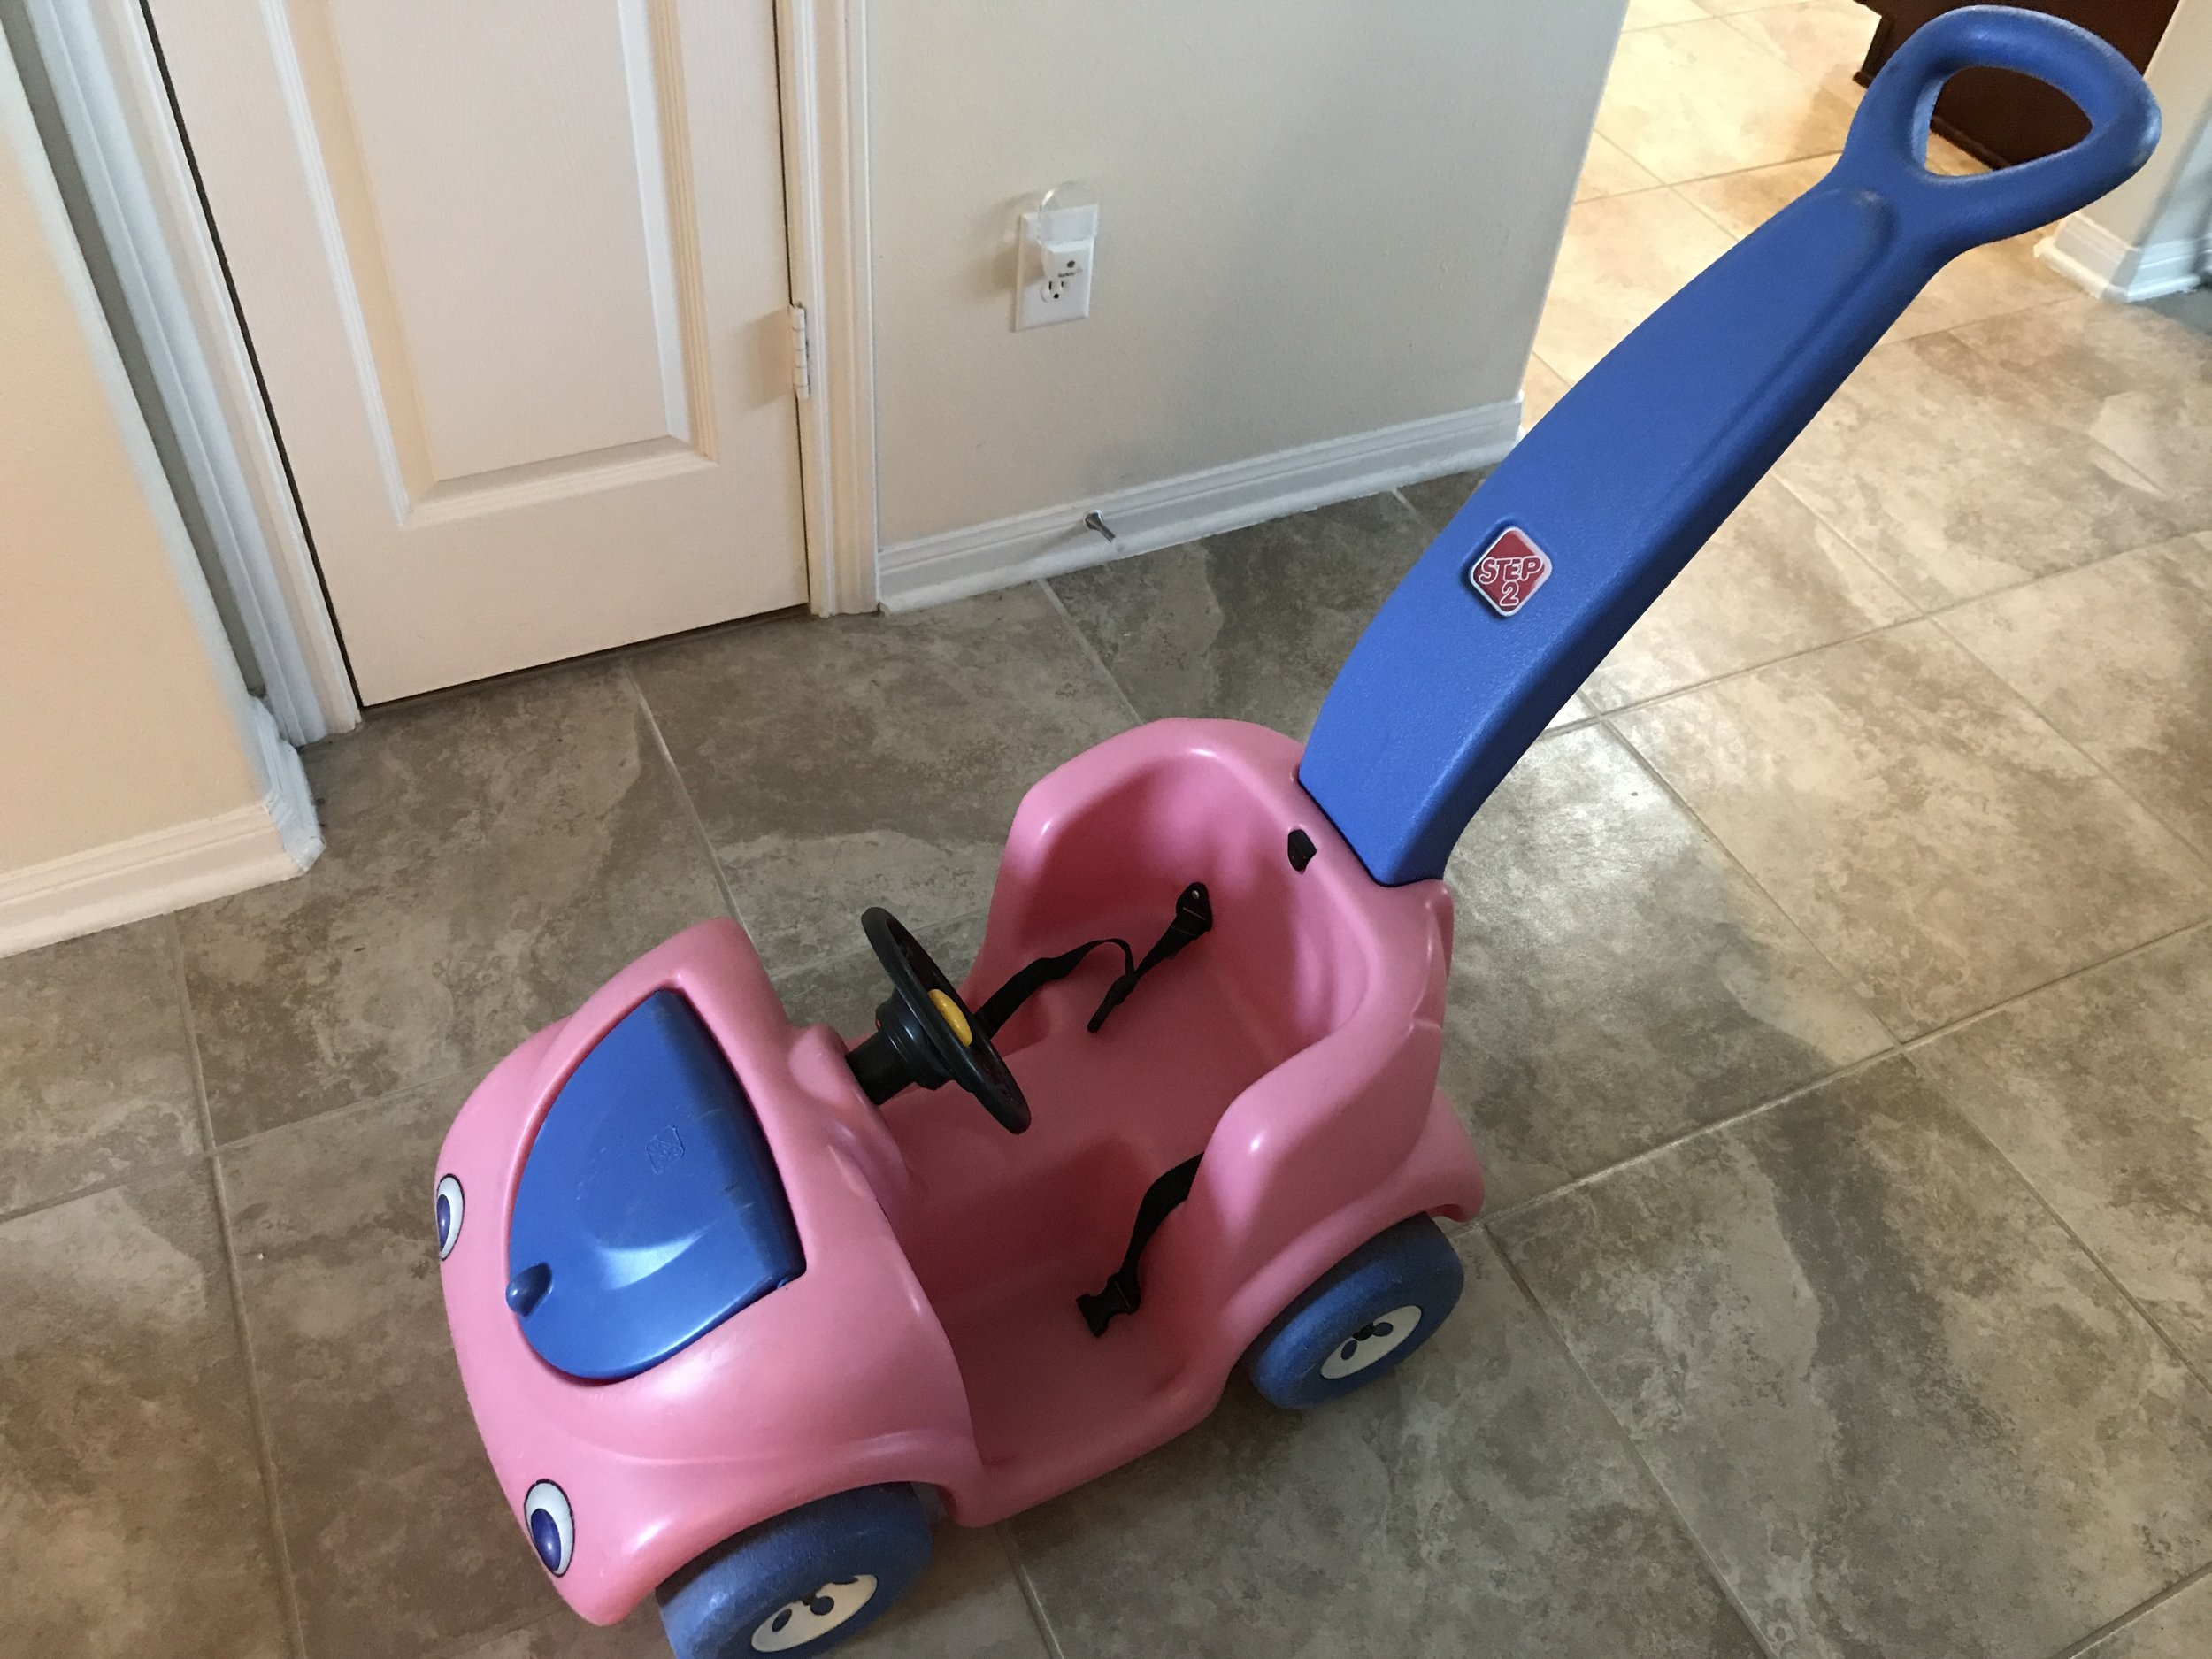 We had been talking about getting this for our daughter. Found it on a classifieds site for $20 used!